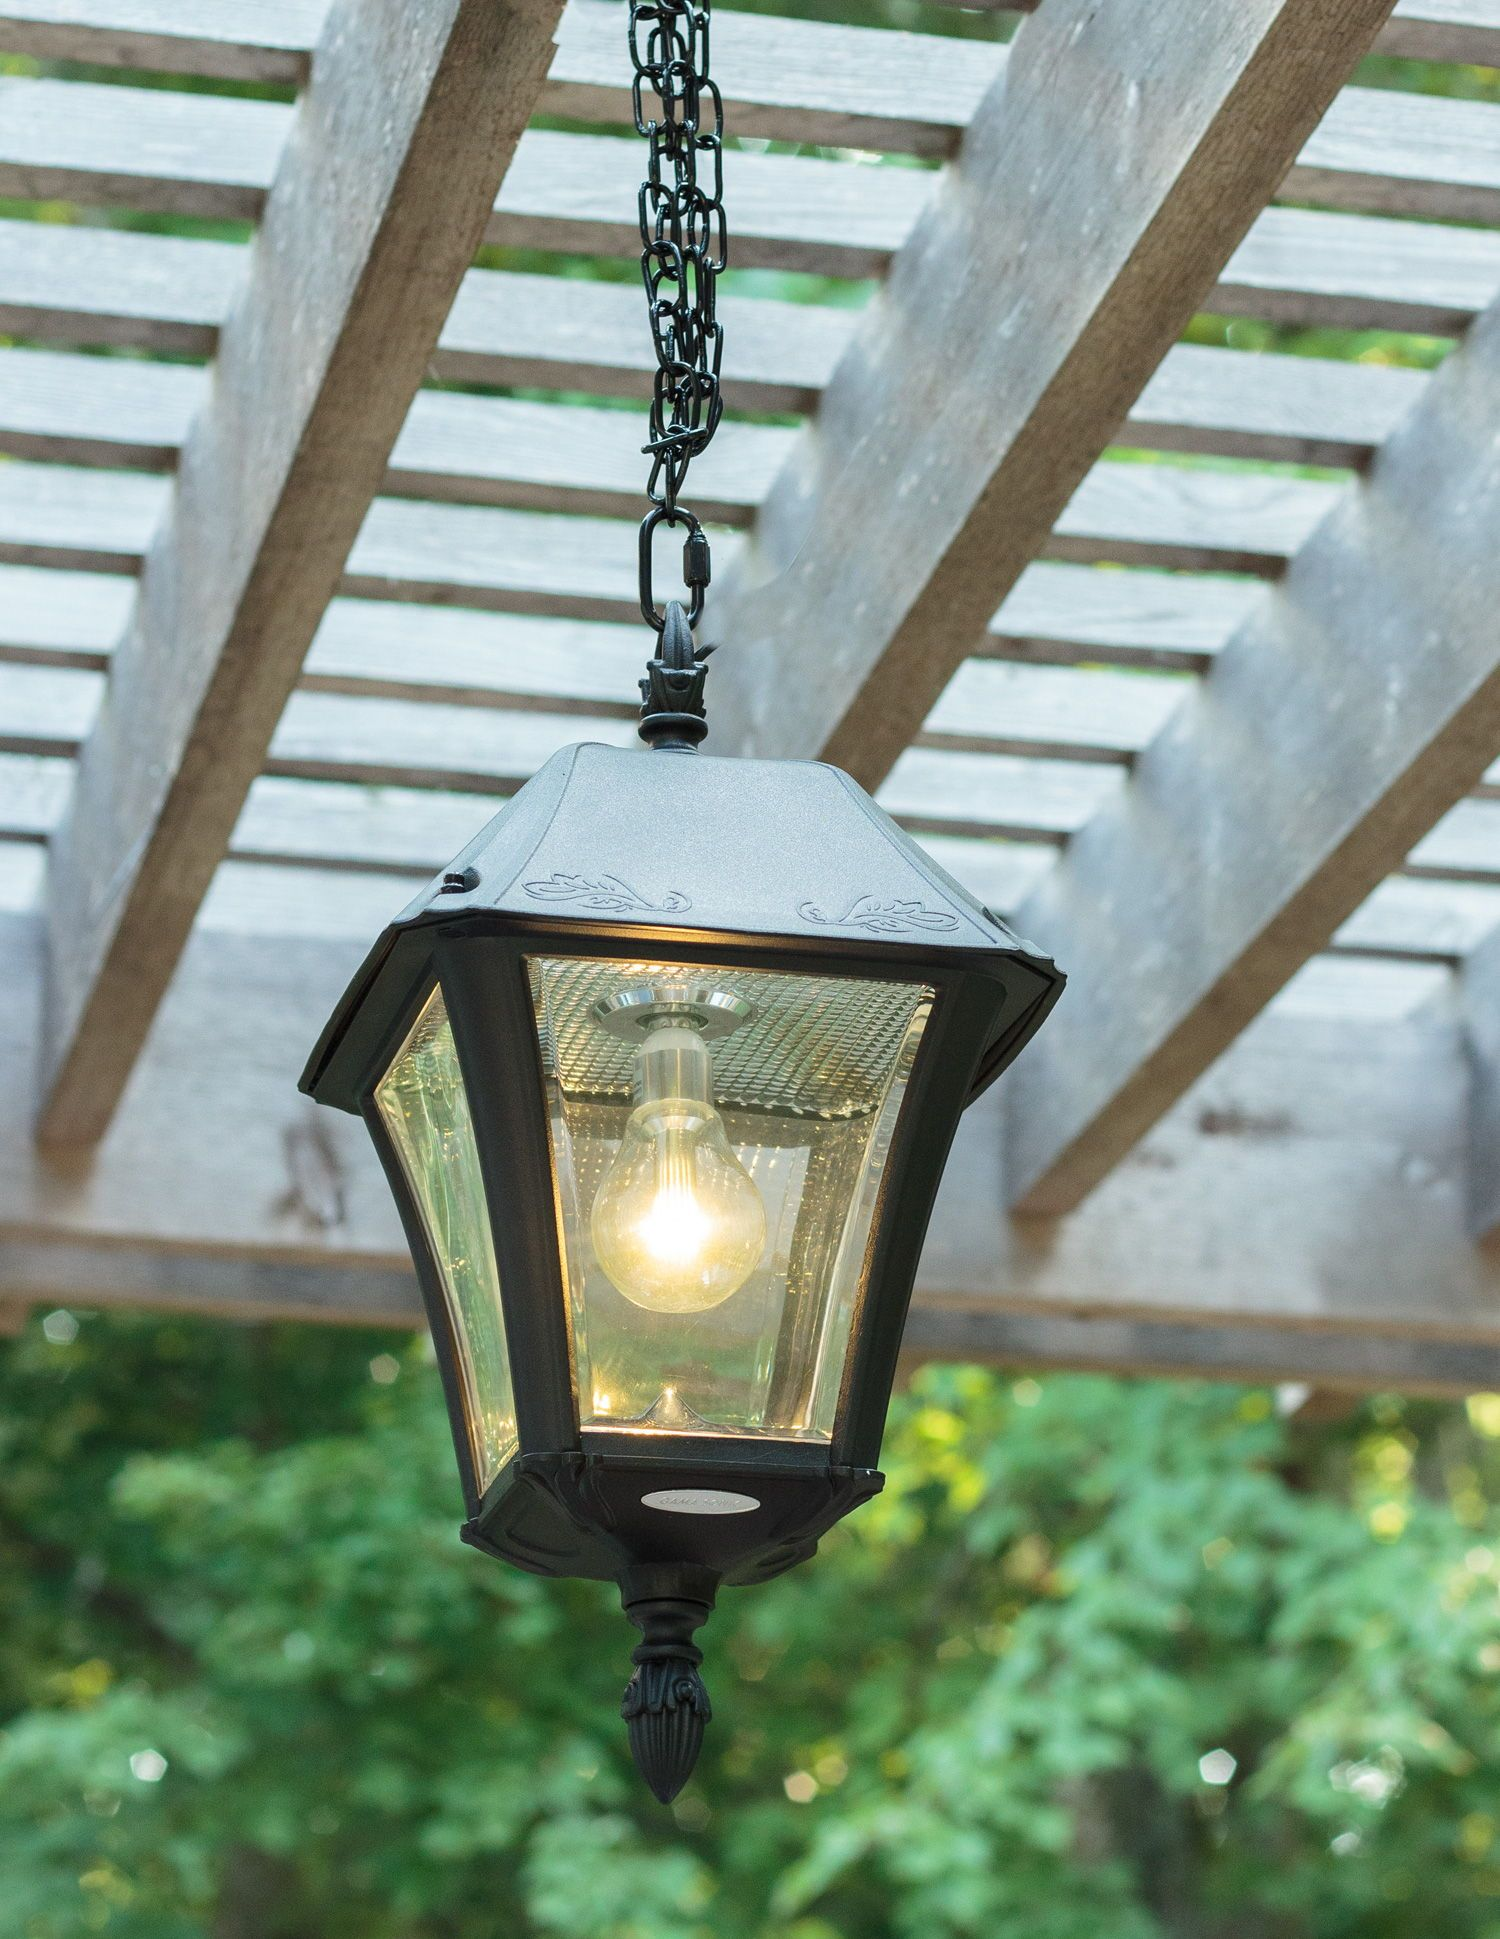 Baytown Ii Bulb Solar Hanging Light Gs 105b Cx Electrical Wiring Fixture Brightly Enhance Your Pergola Or Gazebo With The Outdoor This Does Not Require